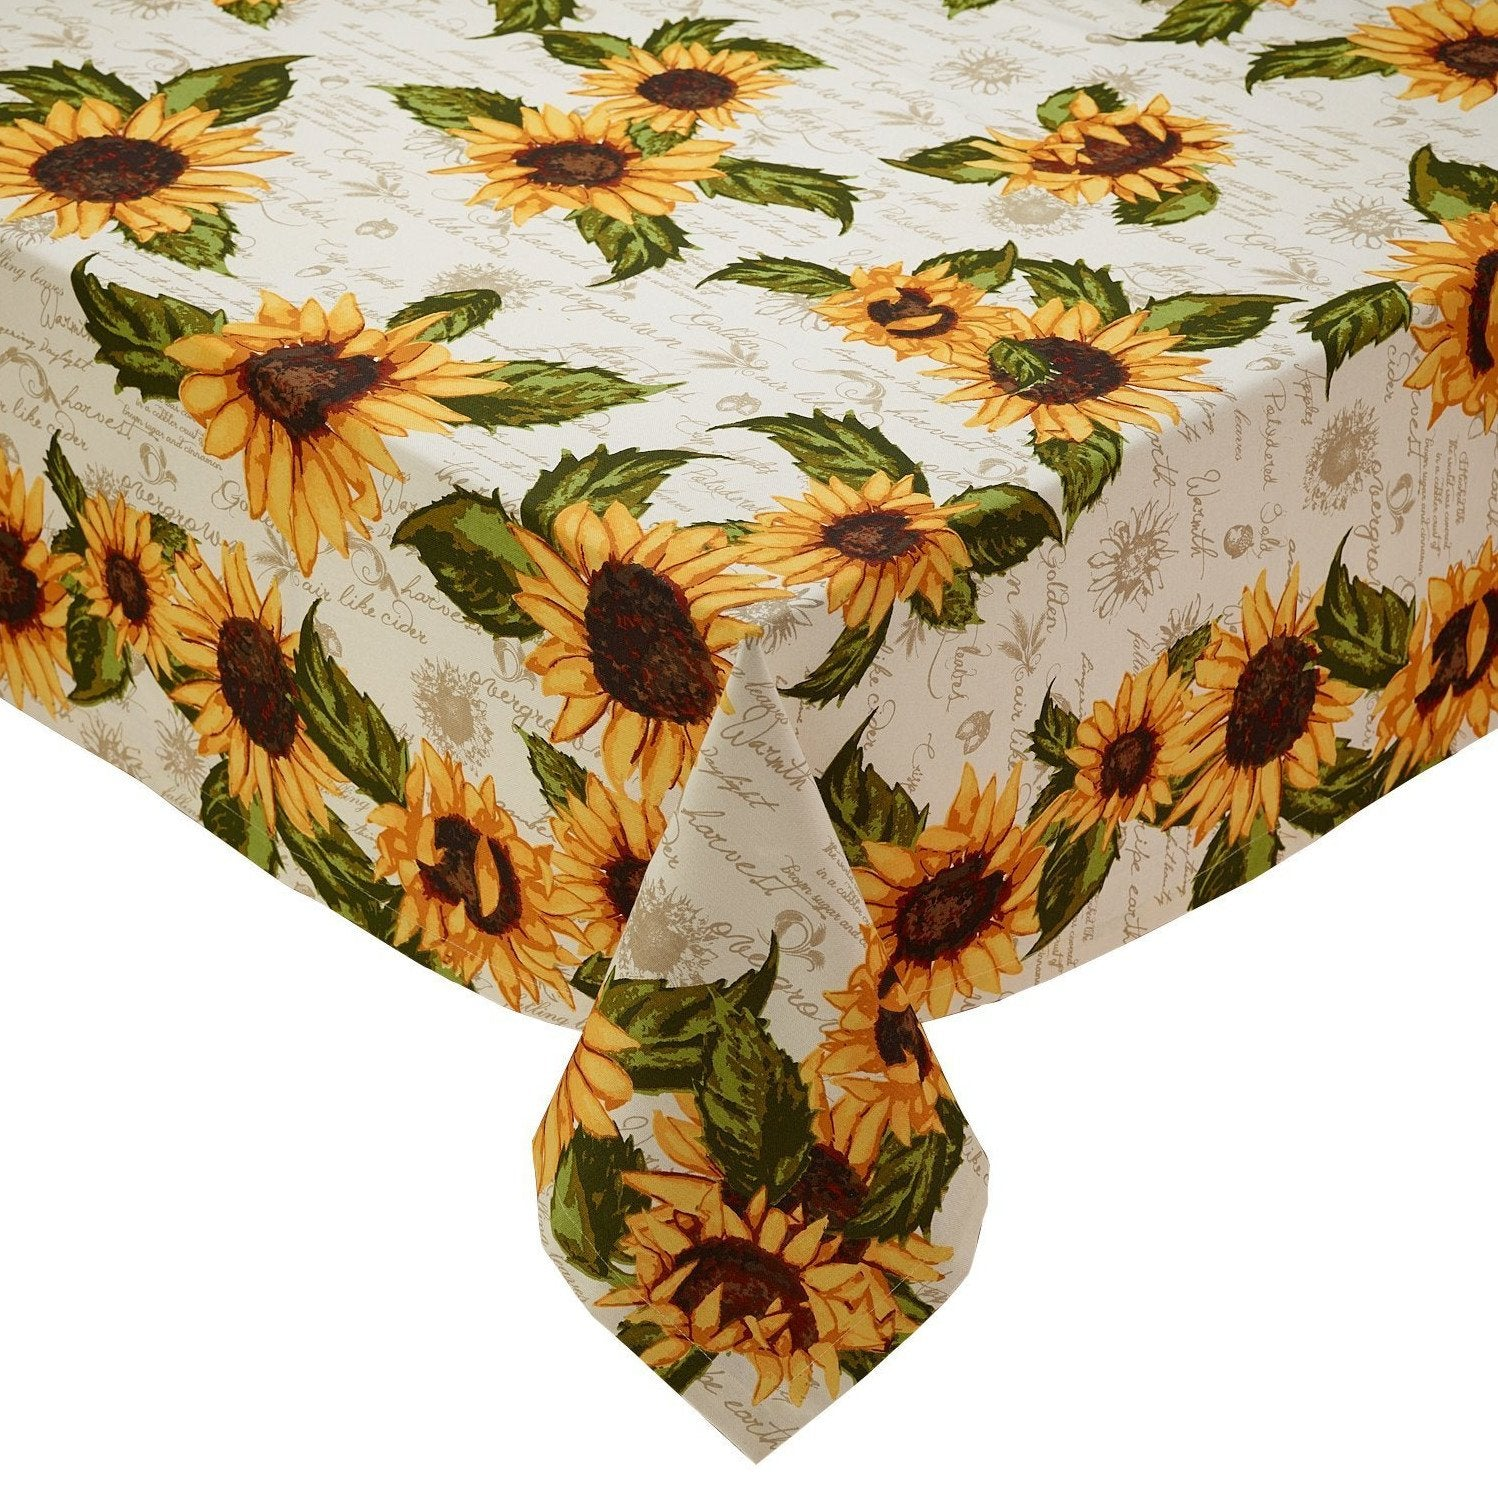 Rustic Sunflower Tablecloth Retro Barn Country Linens